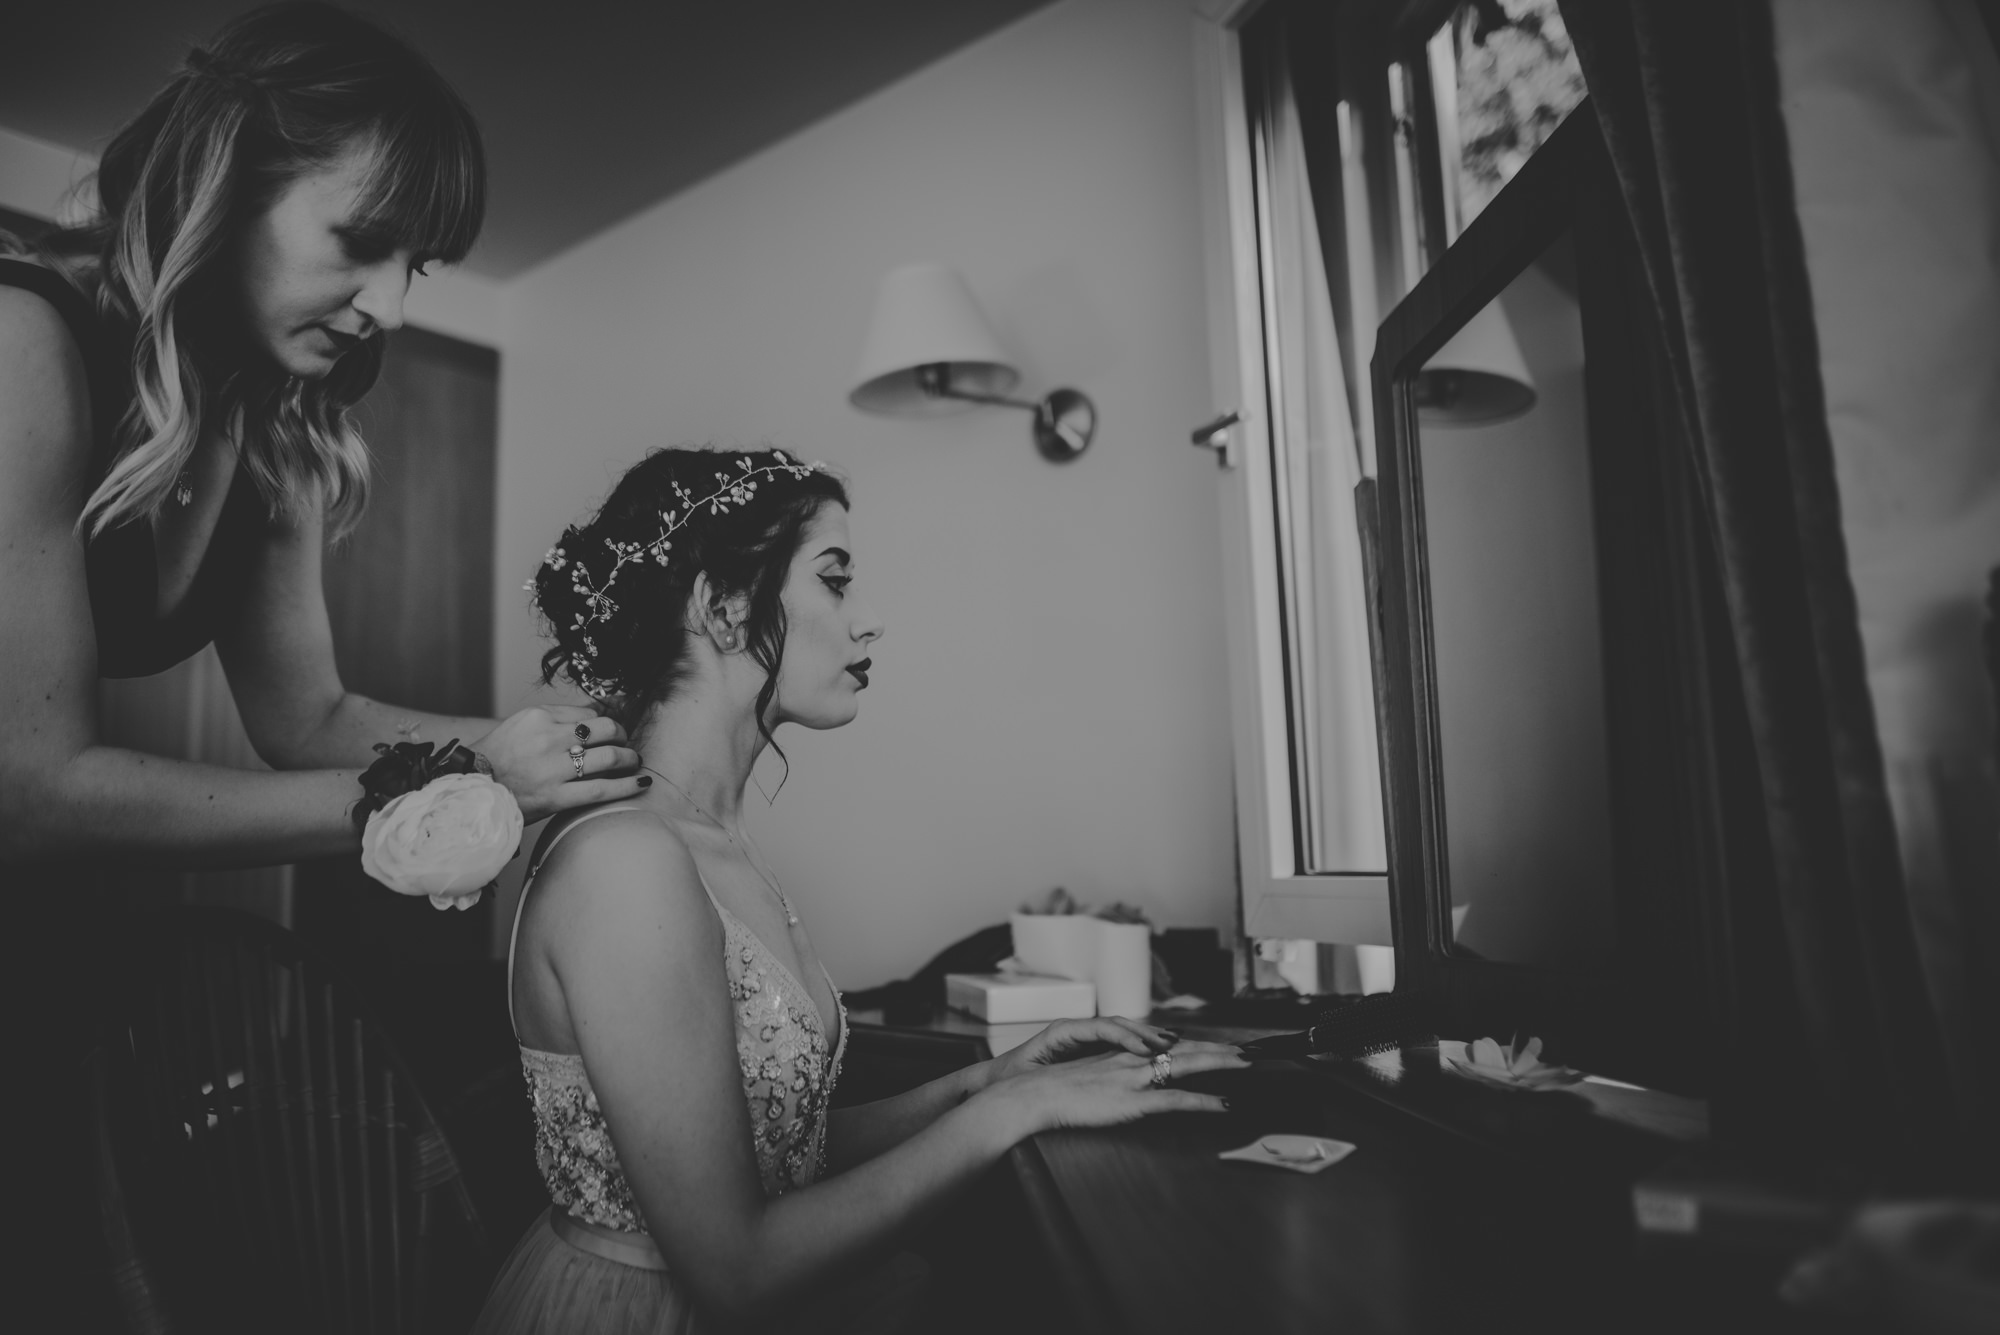 Marissa-and-Ash-Wedding-at-Winchester-Guildhall-and-The-Meade-Hall-Hampshire-Manu-Mendoza-Wedding-Photography-157.jpg